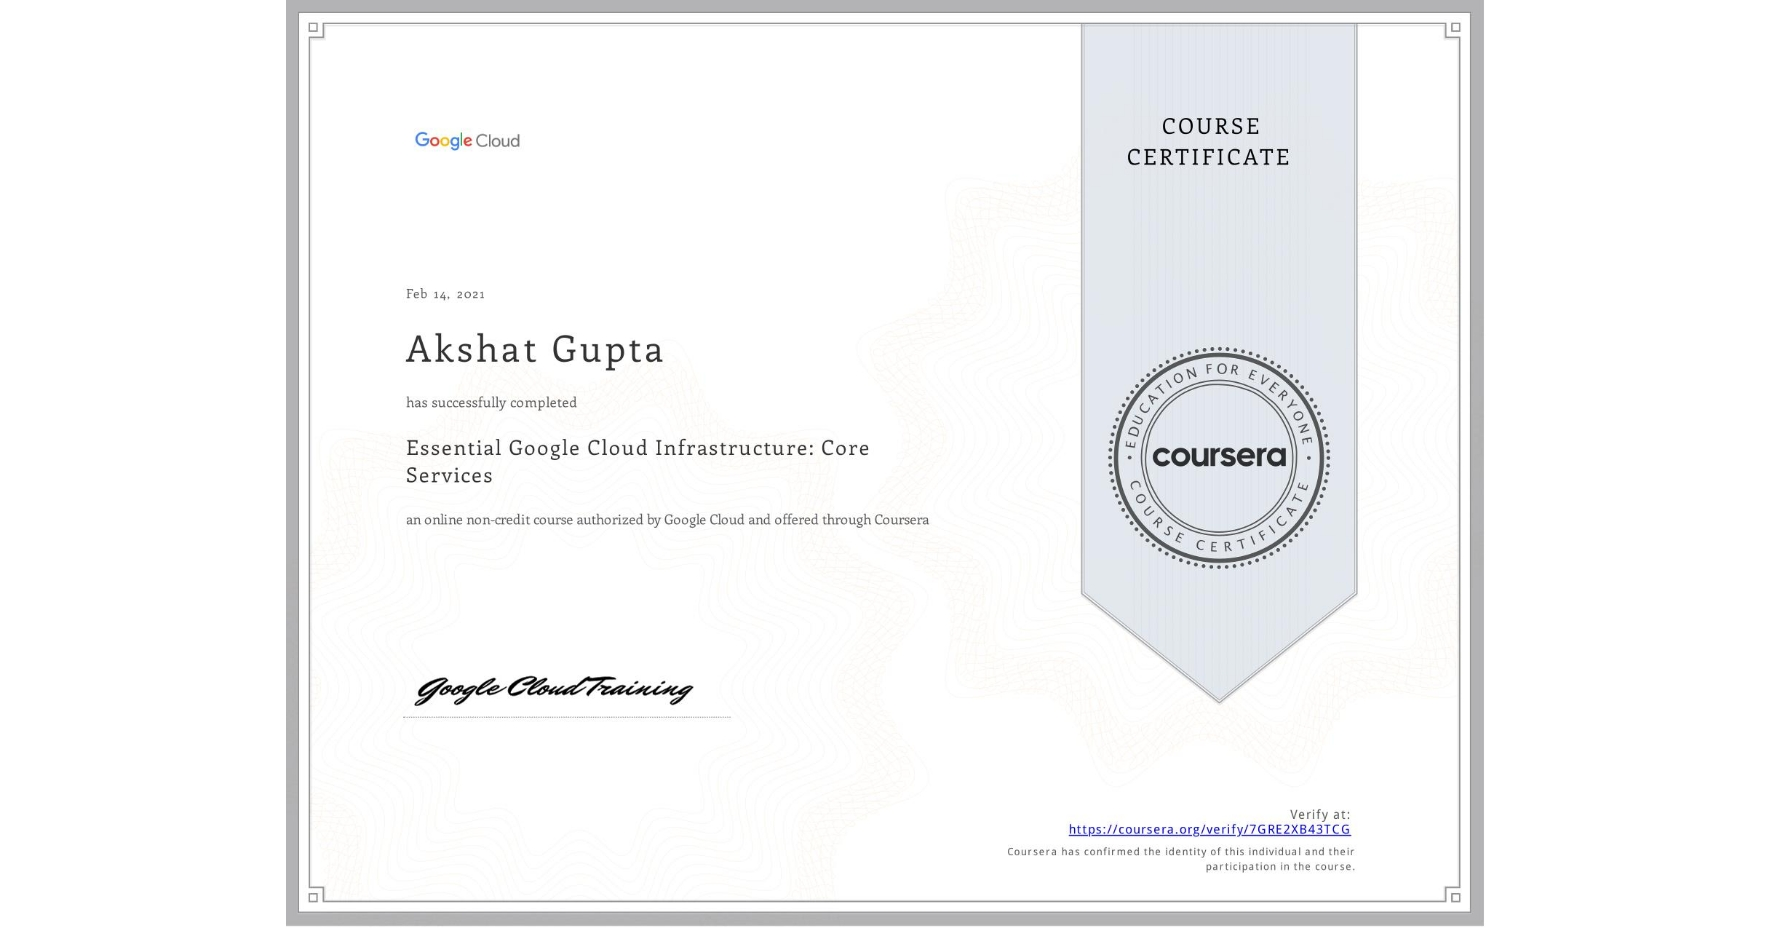 View certificate for Akshat Gupta, Essential Google Cloud Infrastructure: Core Services, an online non-credit course authorized by Google Cloud and offered through Coursera